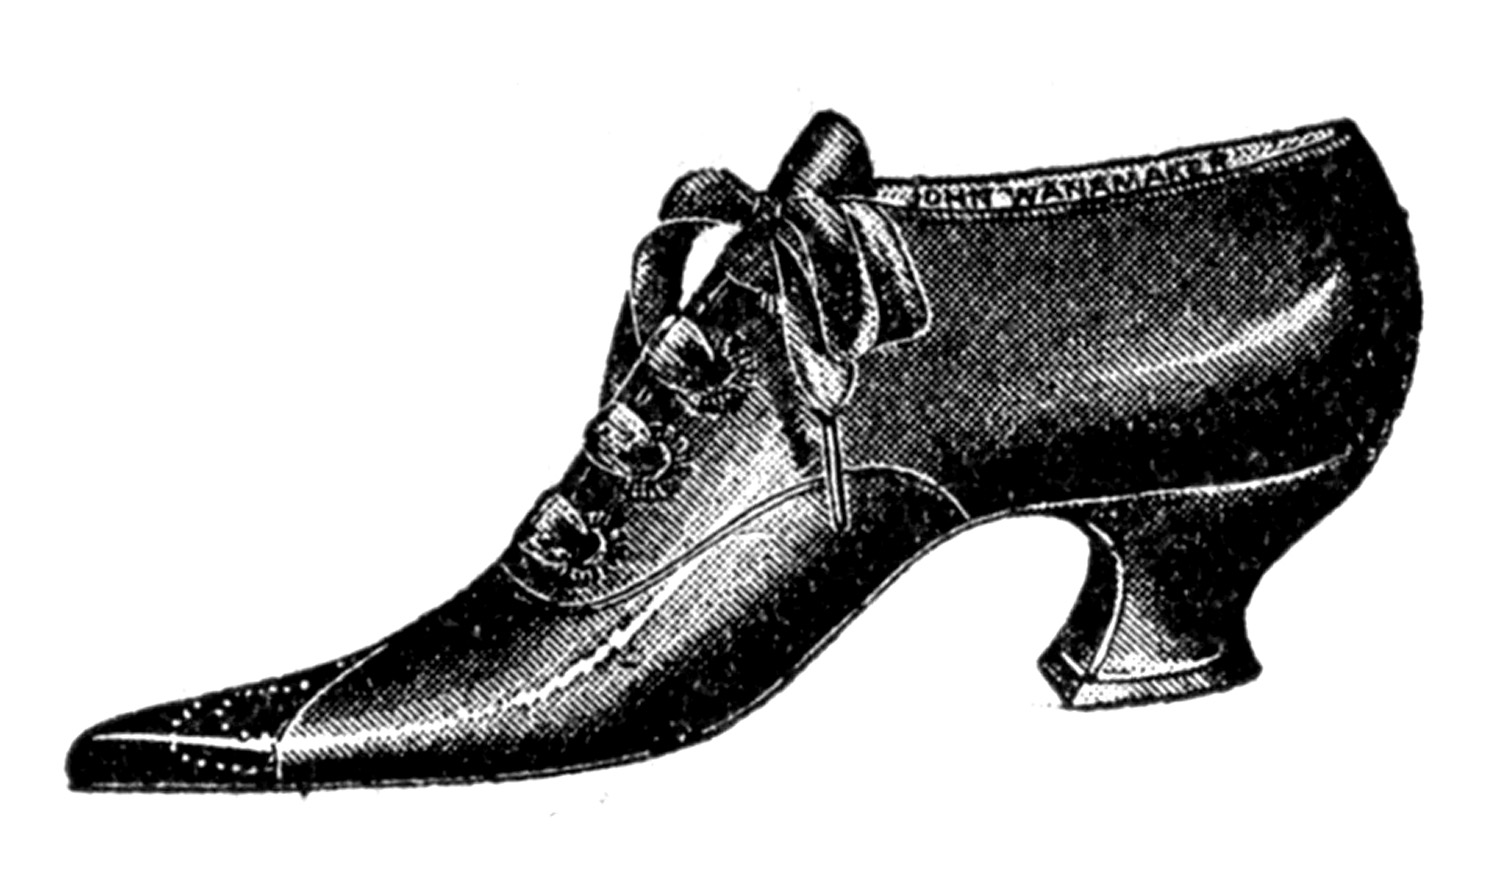 Free stylish mens shoe clipart clipart and vector image.